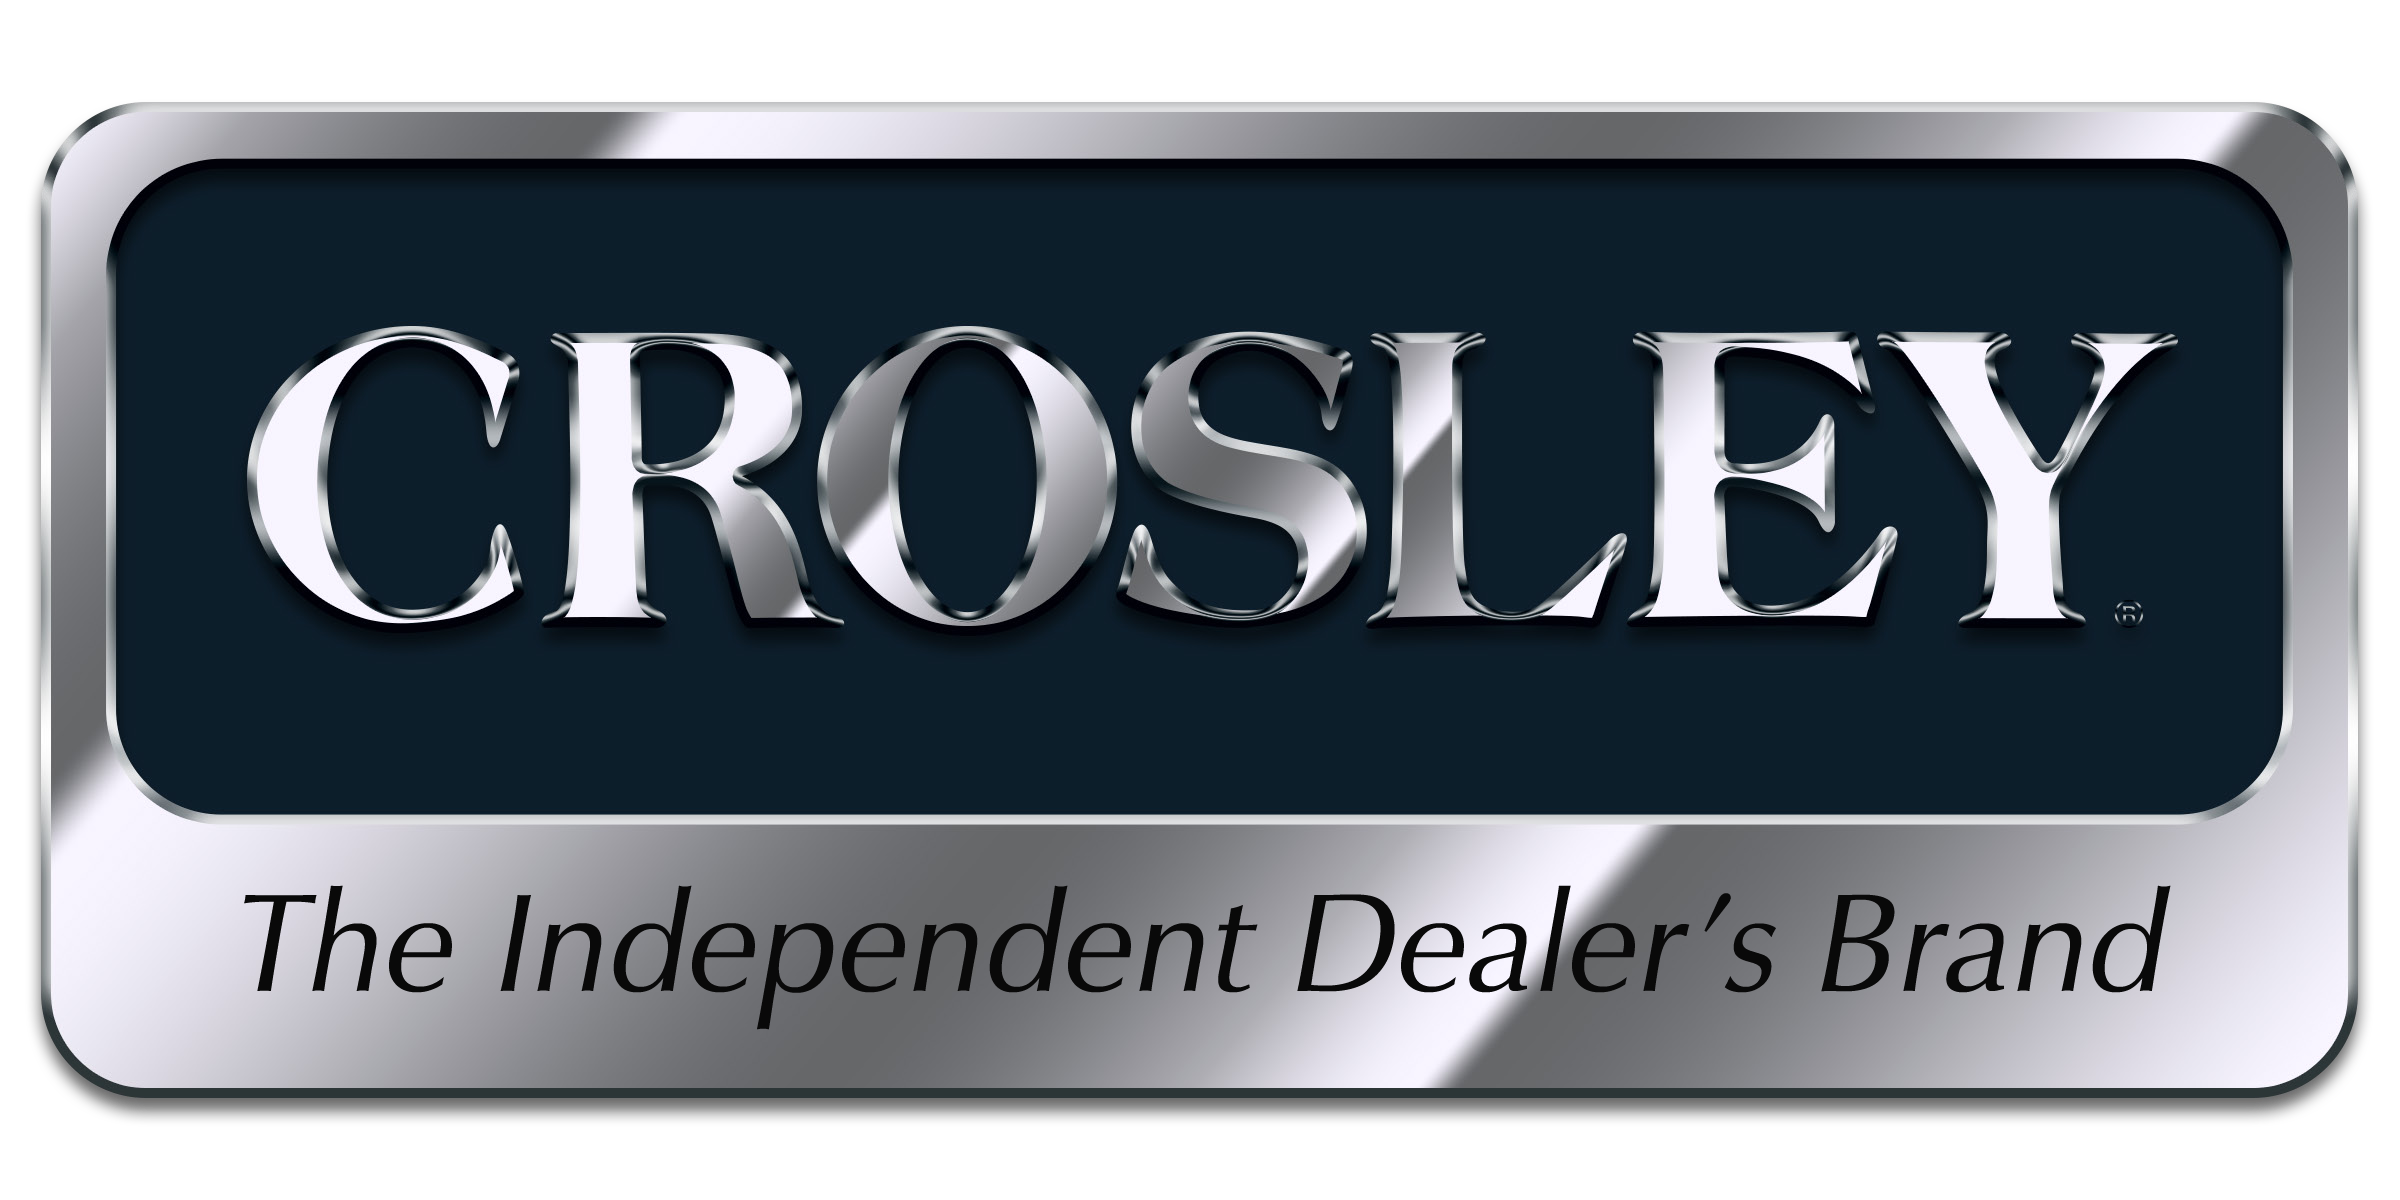 Crosley Appliances and Distribution